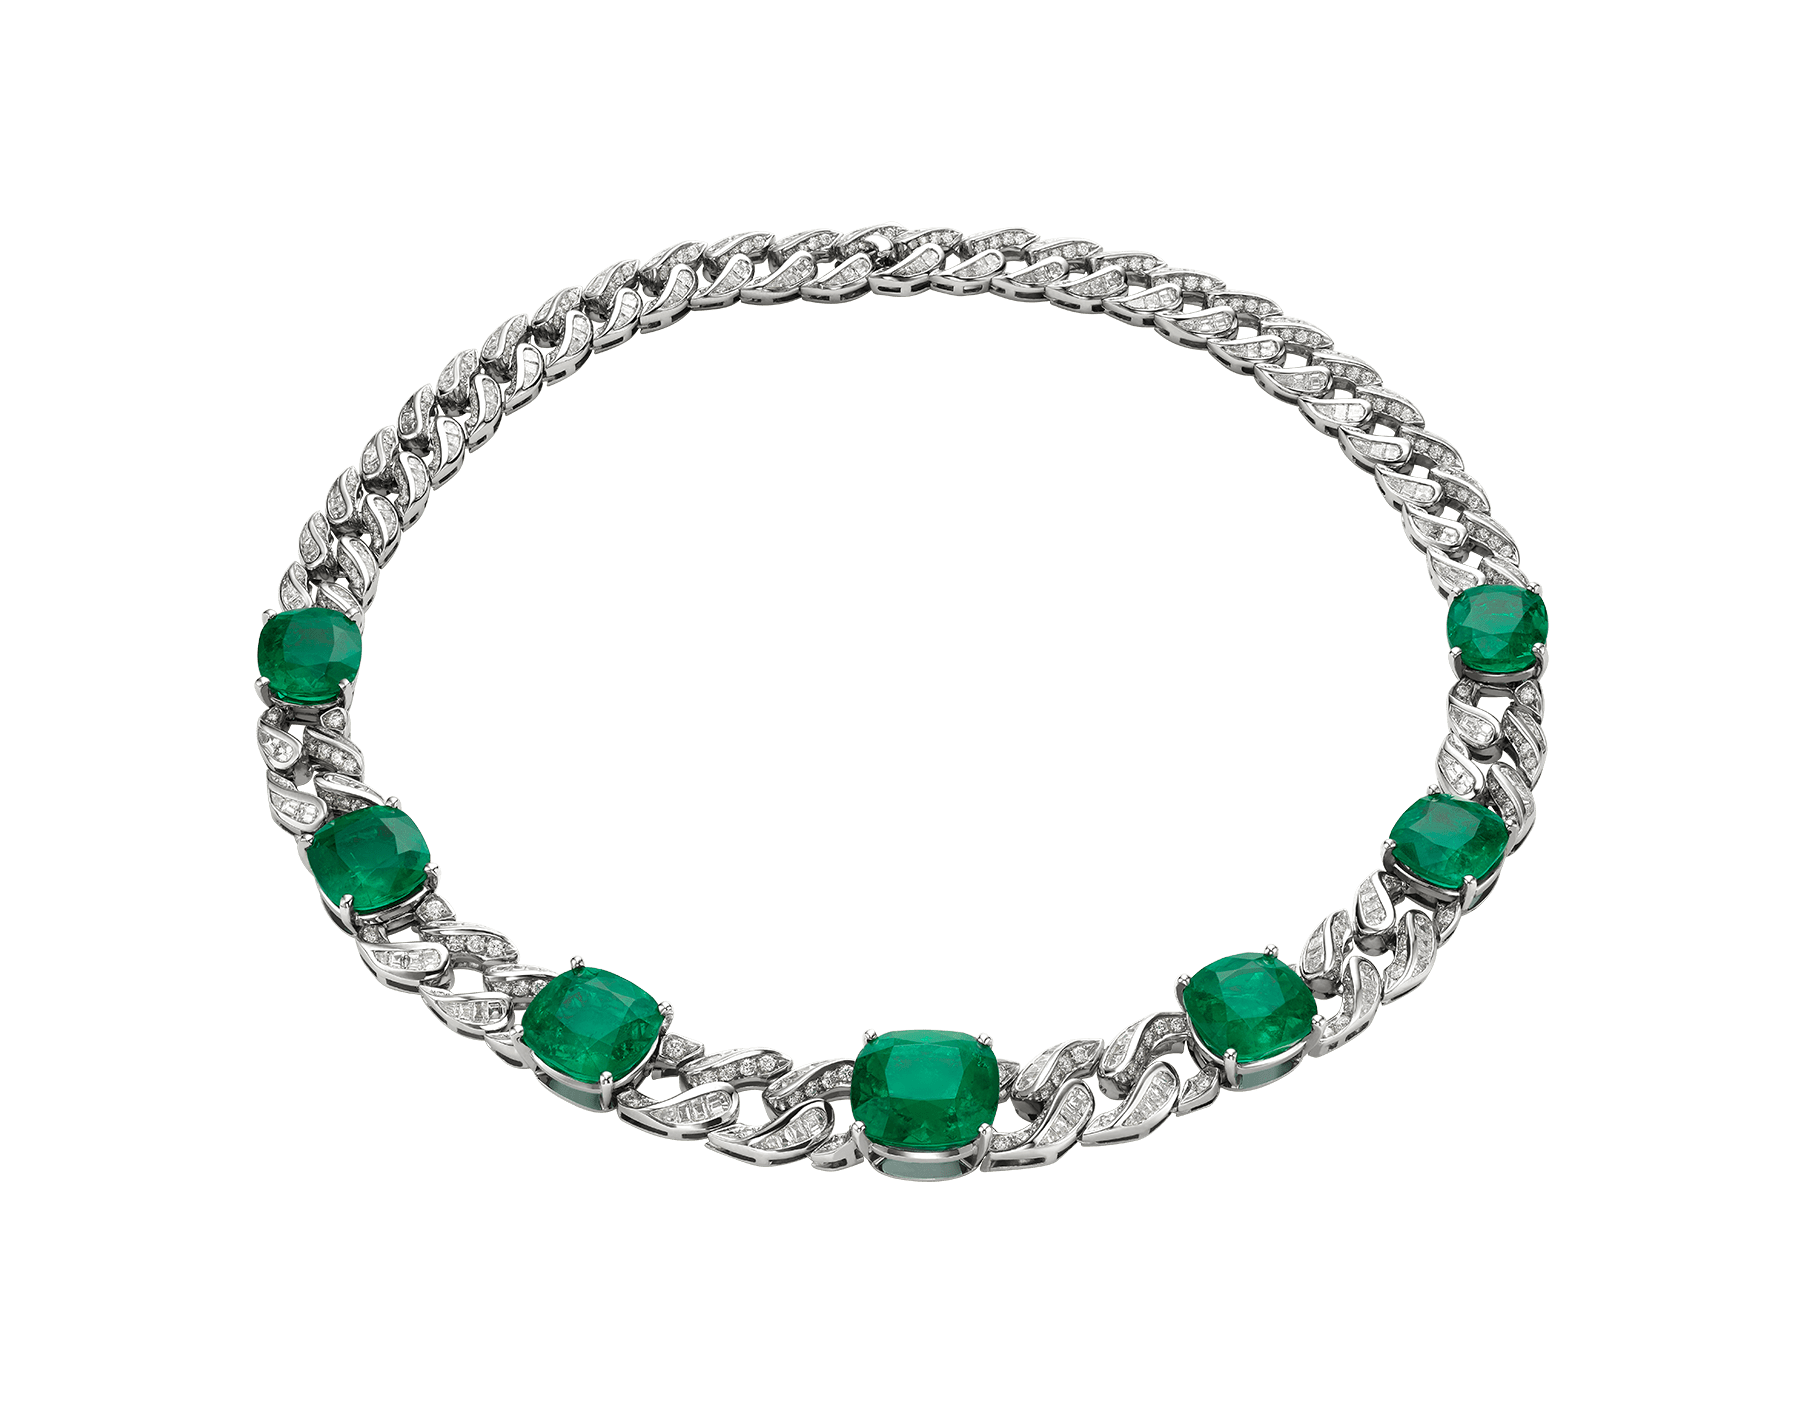 With the most amazing emeralds, set on a stately chain and married with diamonds into a timeless design, the Gemme principesche necklace sparkles with royal magnificence. 260504 image 1